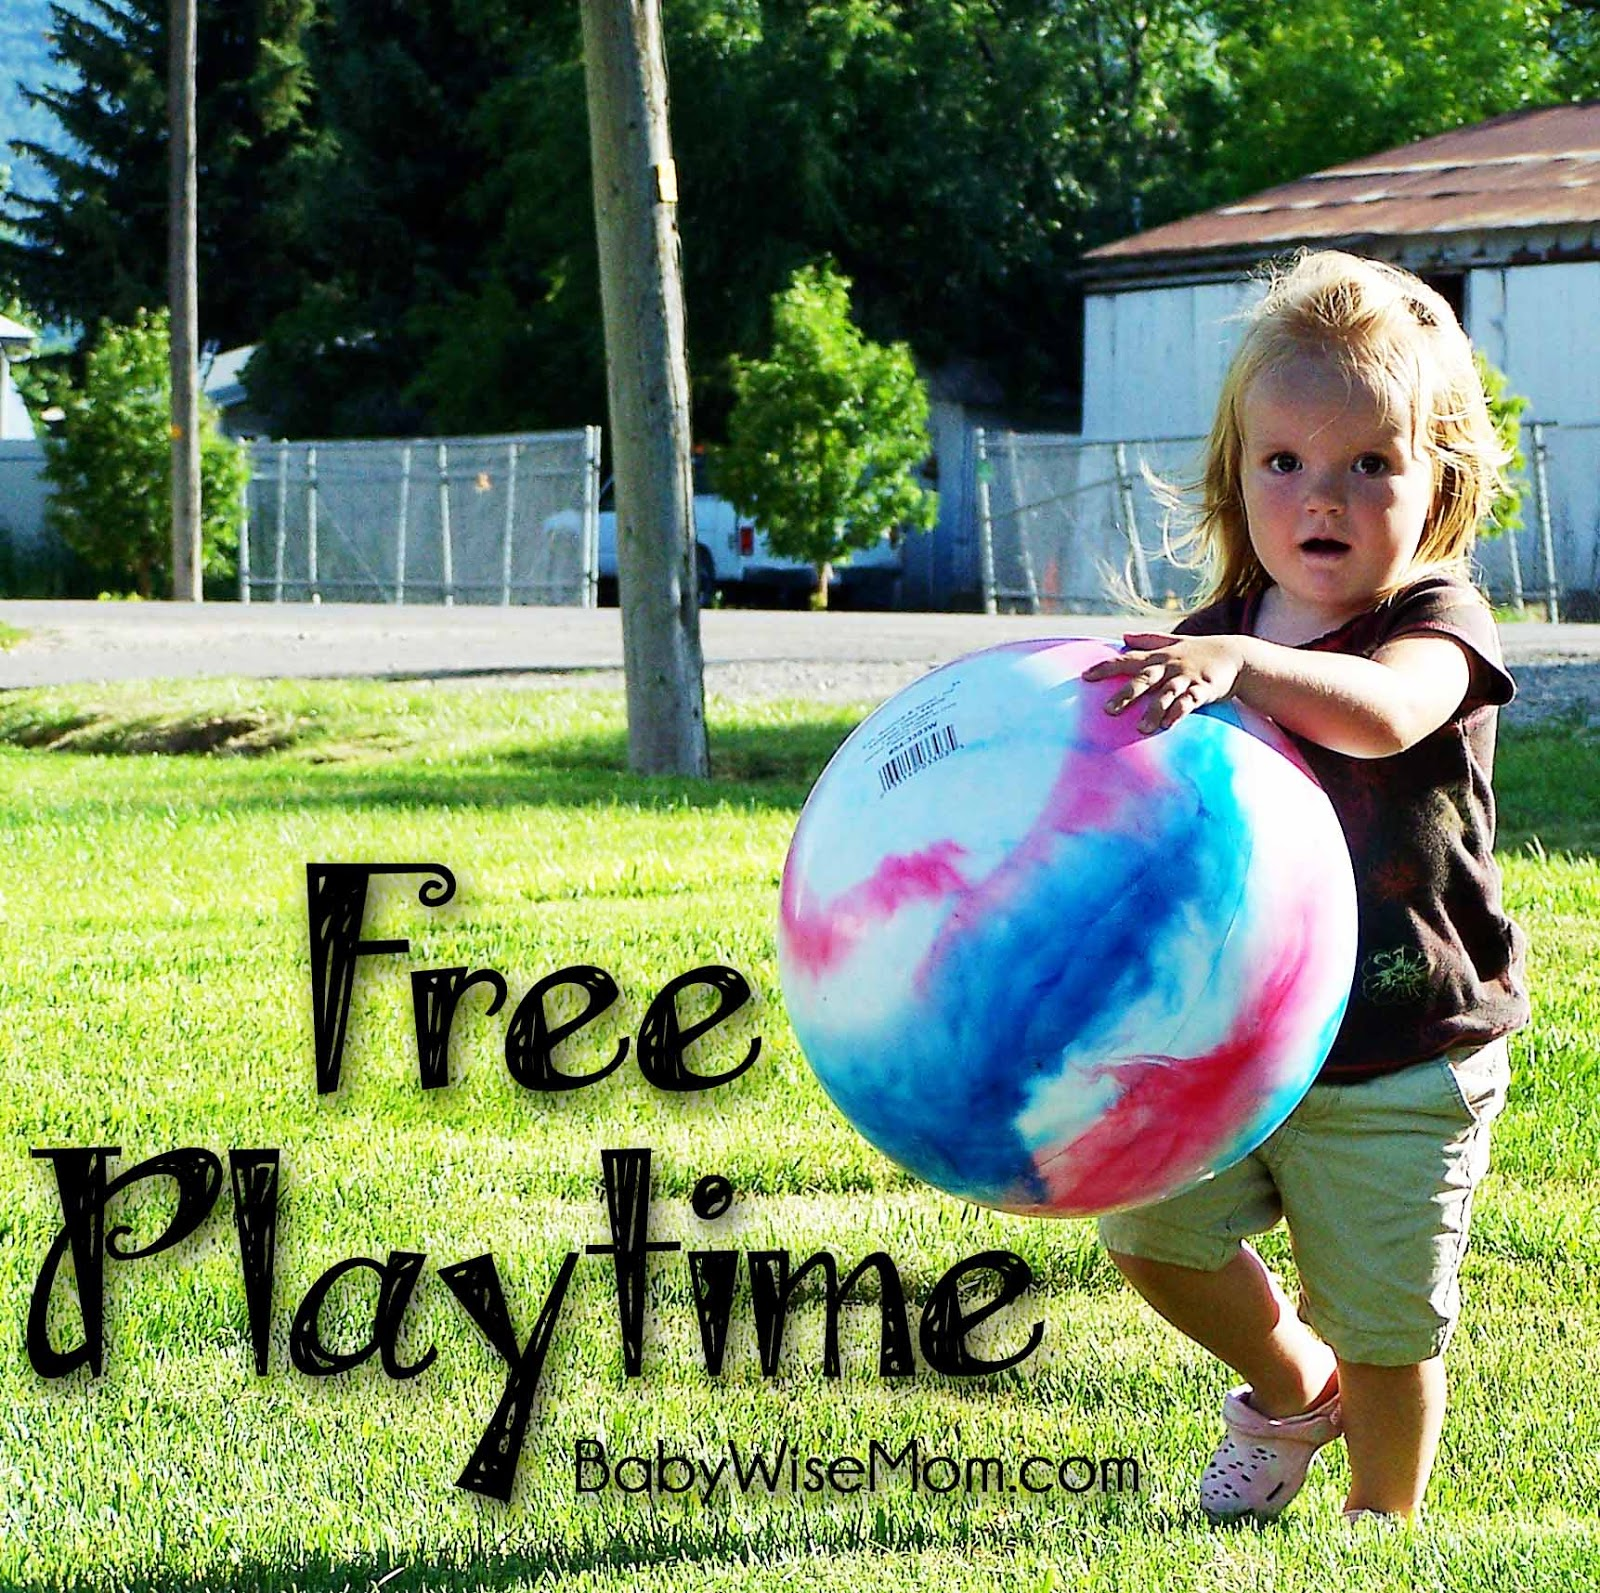 How To Use Free Playtime In Your Child's Schedule